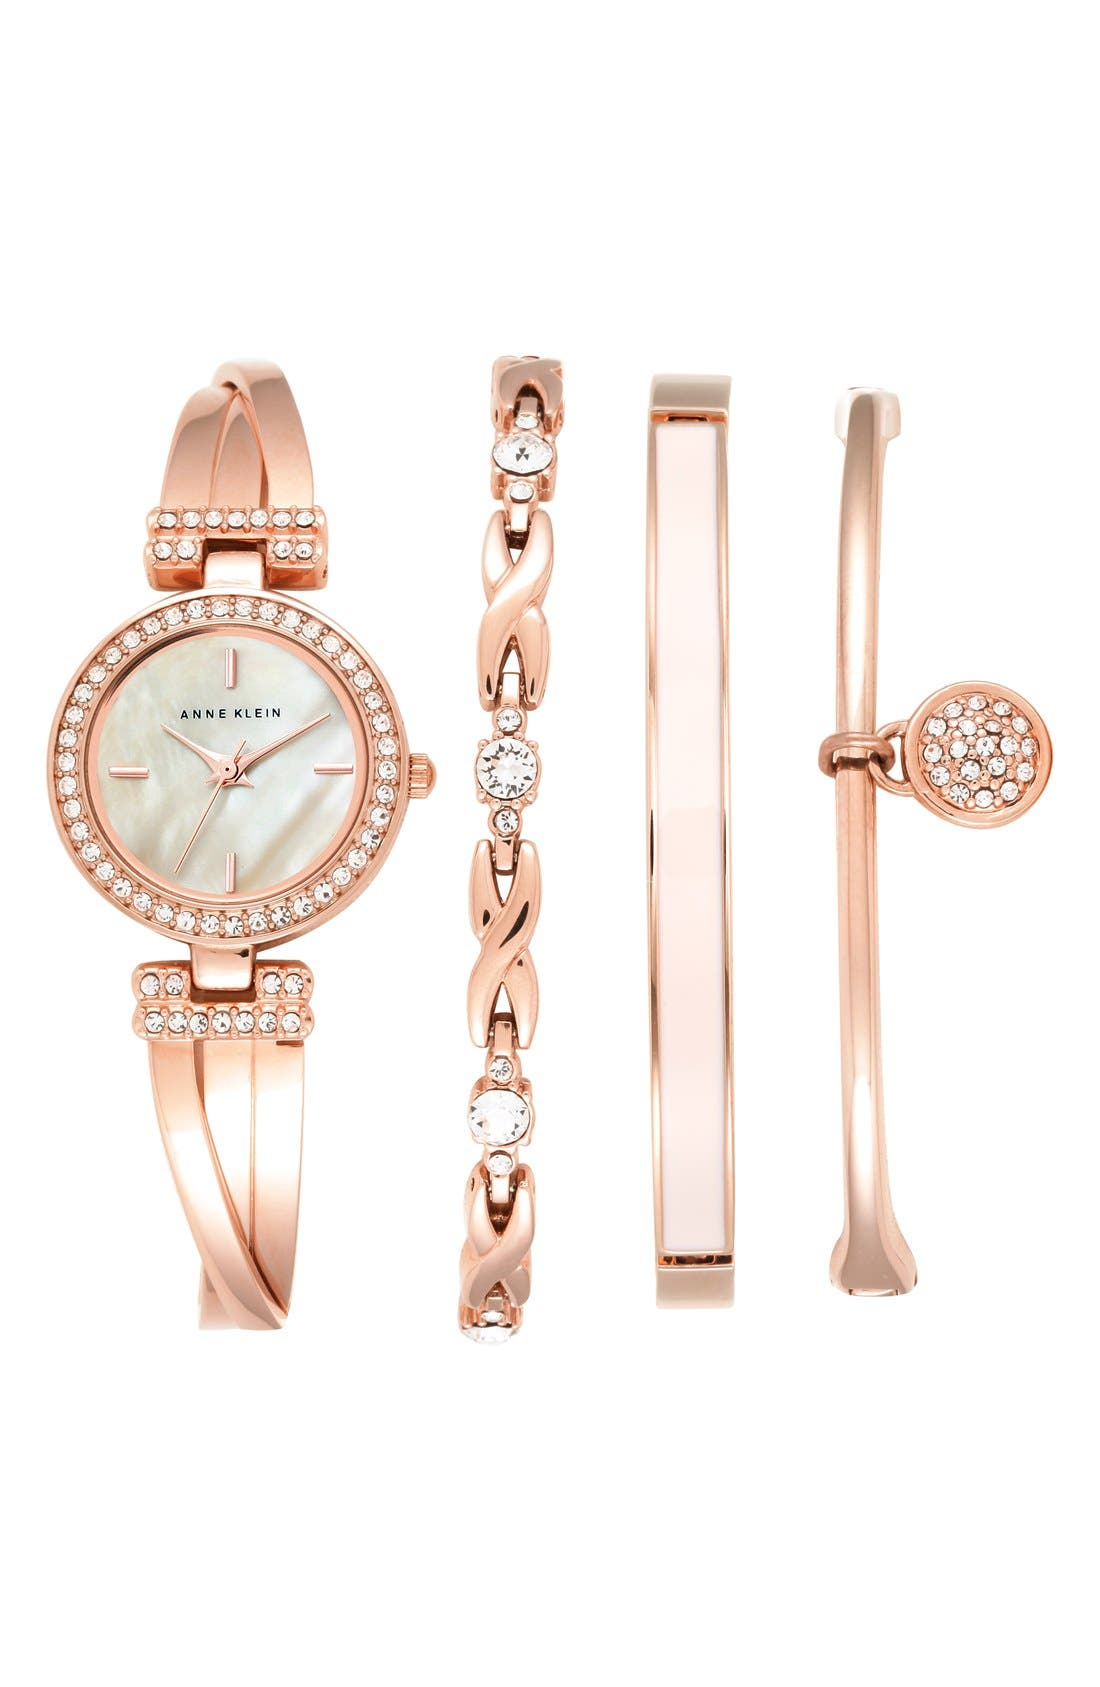 ANNE KLEIN Boxed Bracelet & Bangle Watch Set,